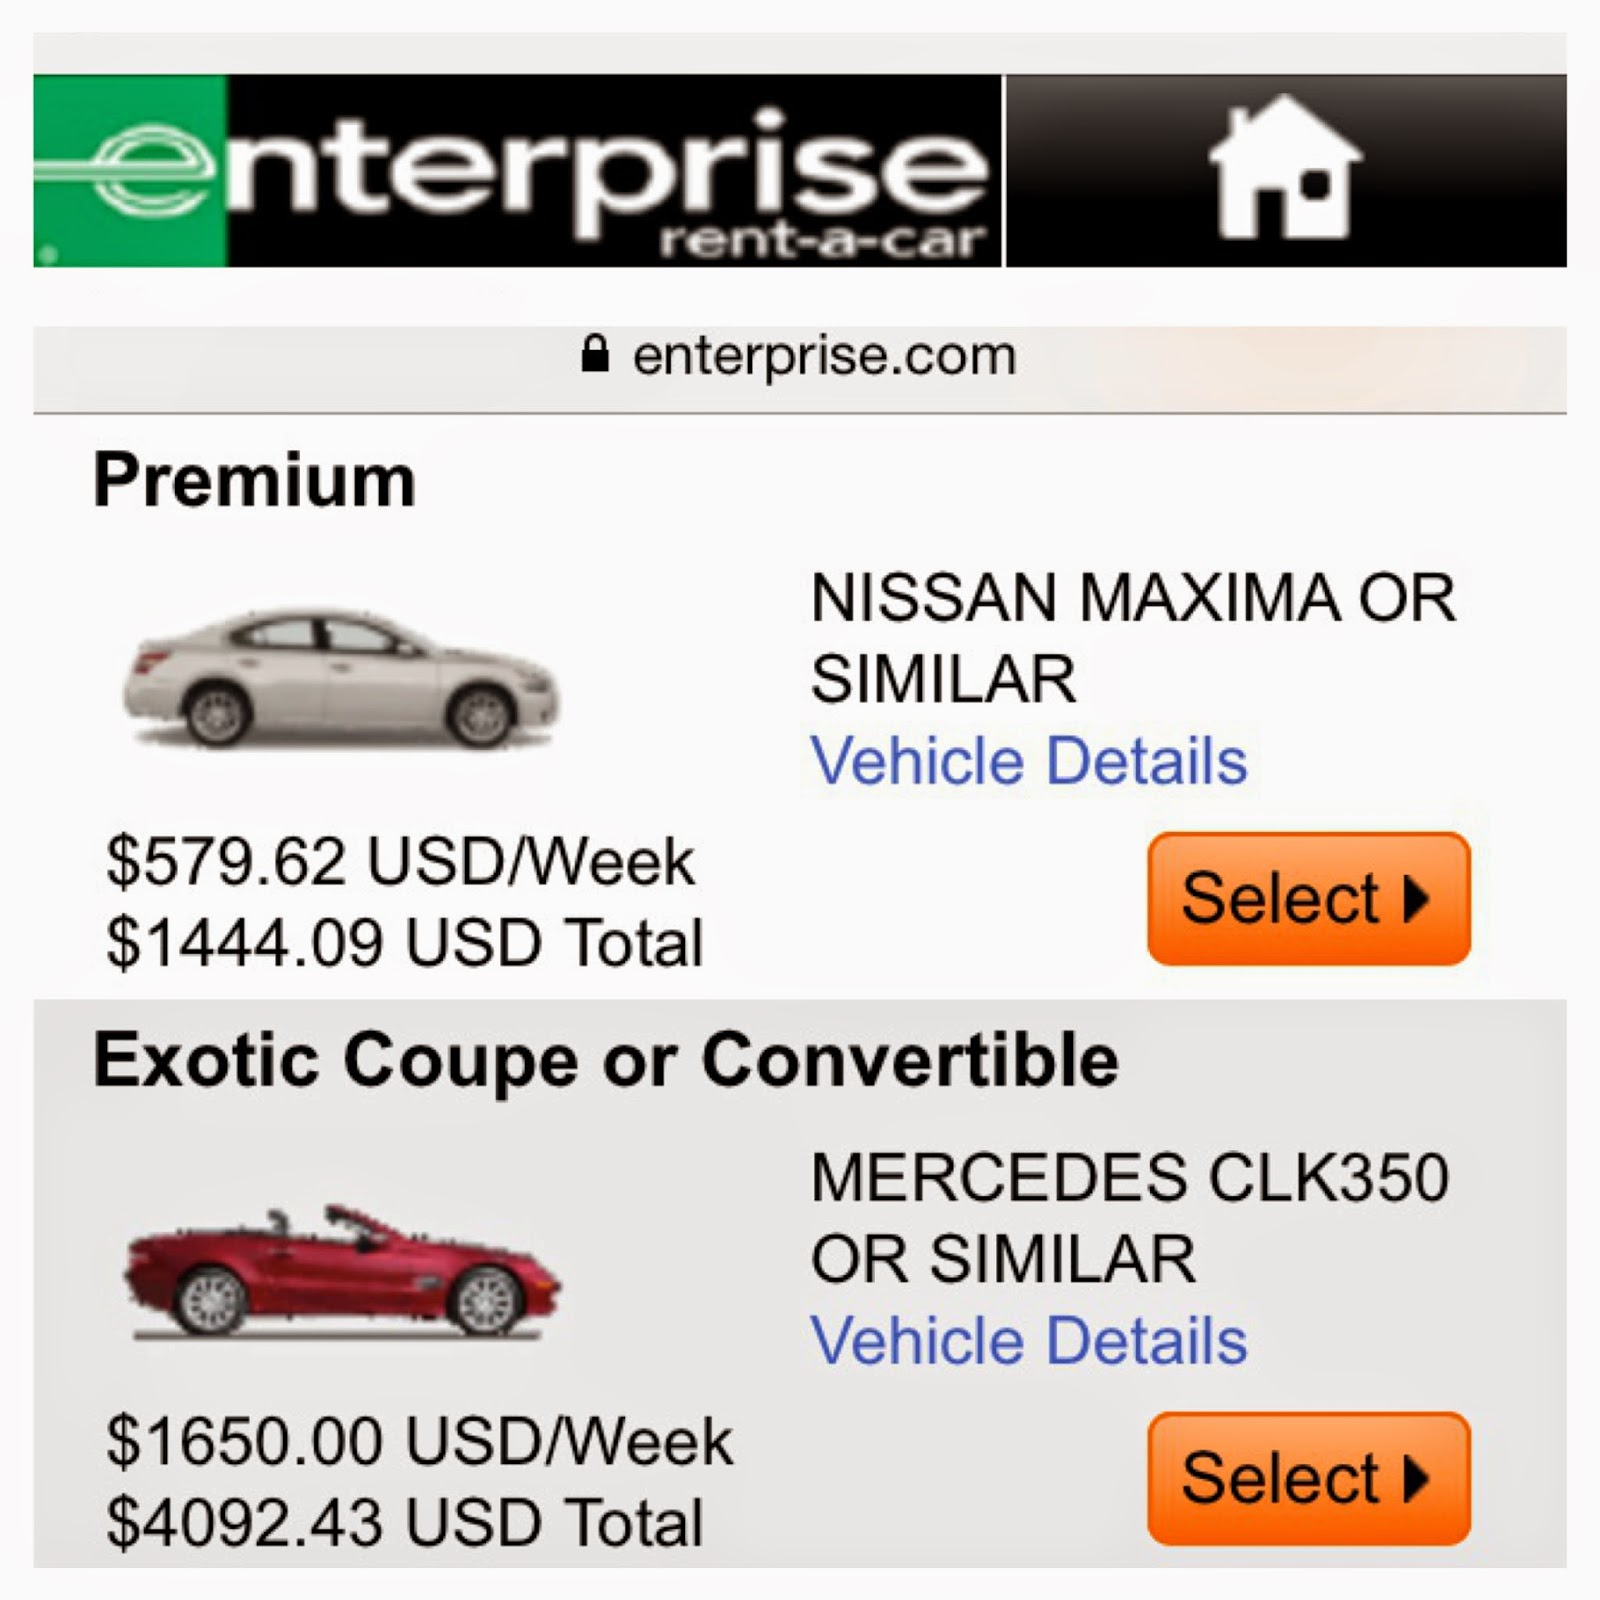 Enterprise car rental weekend coupons